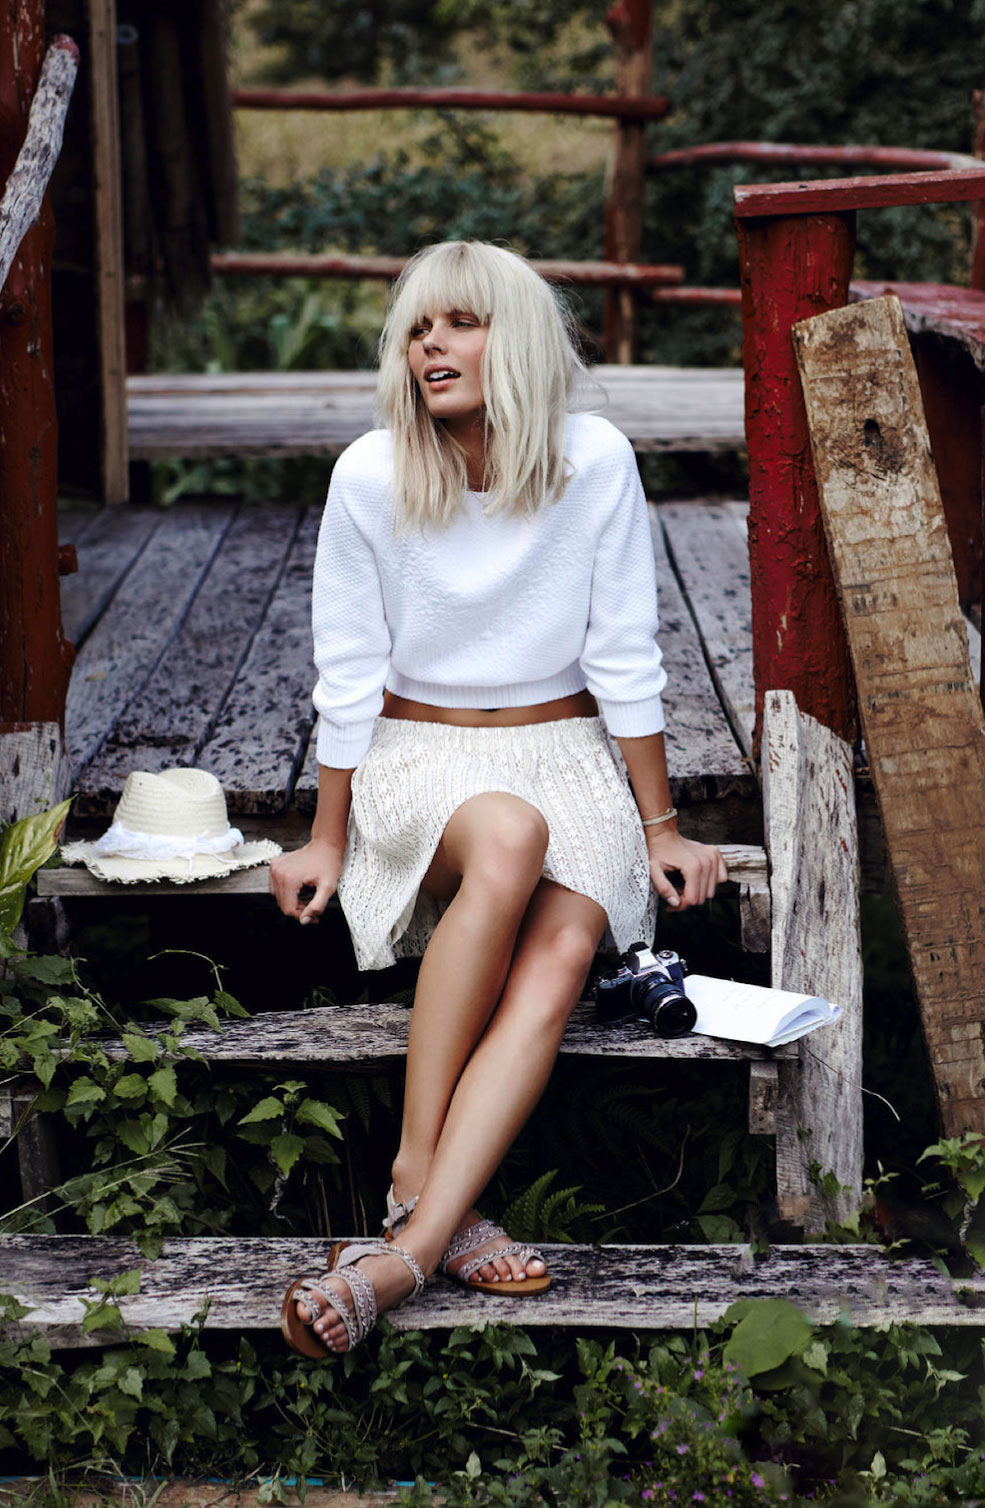 Marlijn Hoek in White in the wild | Marie Claire Netherlands May 2013 (photography: Carmen Kemmink, styling: Marjolein Mos)